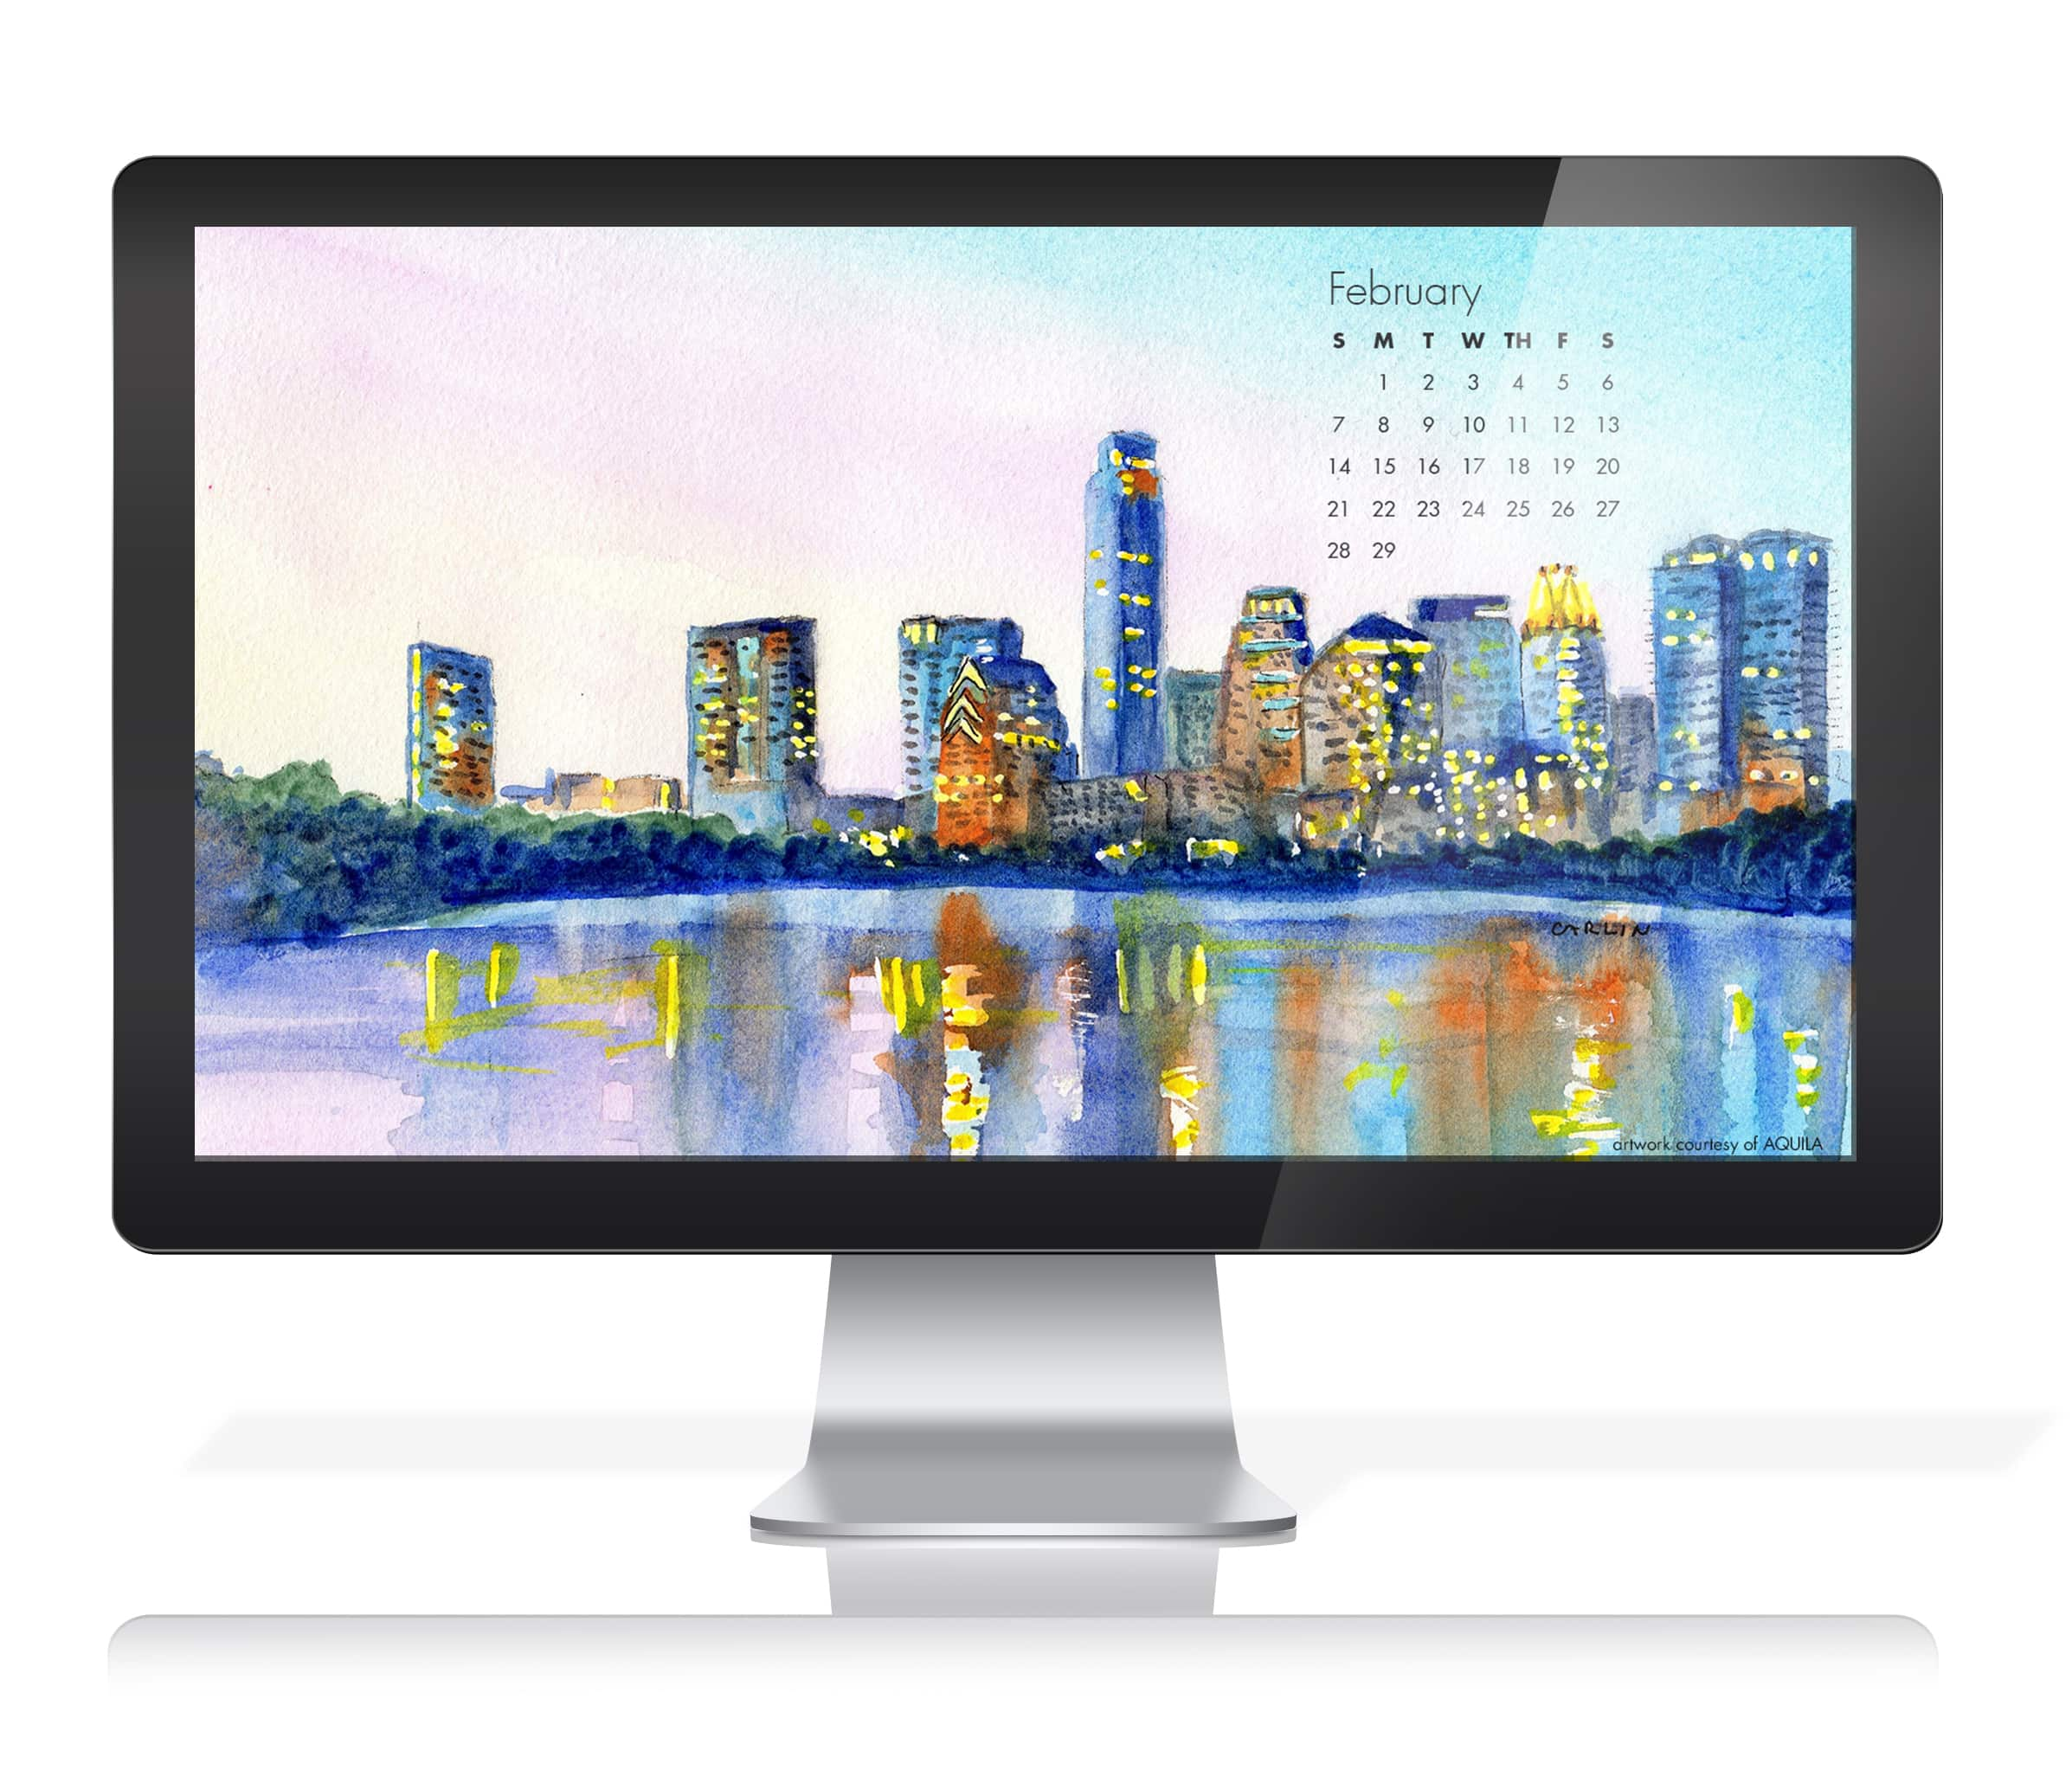 Desktop Background with Calendar by Carlin Blahnik